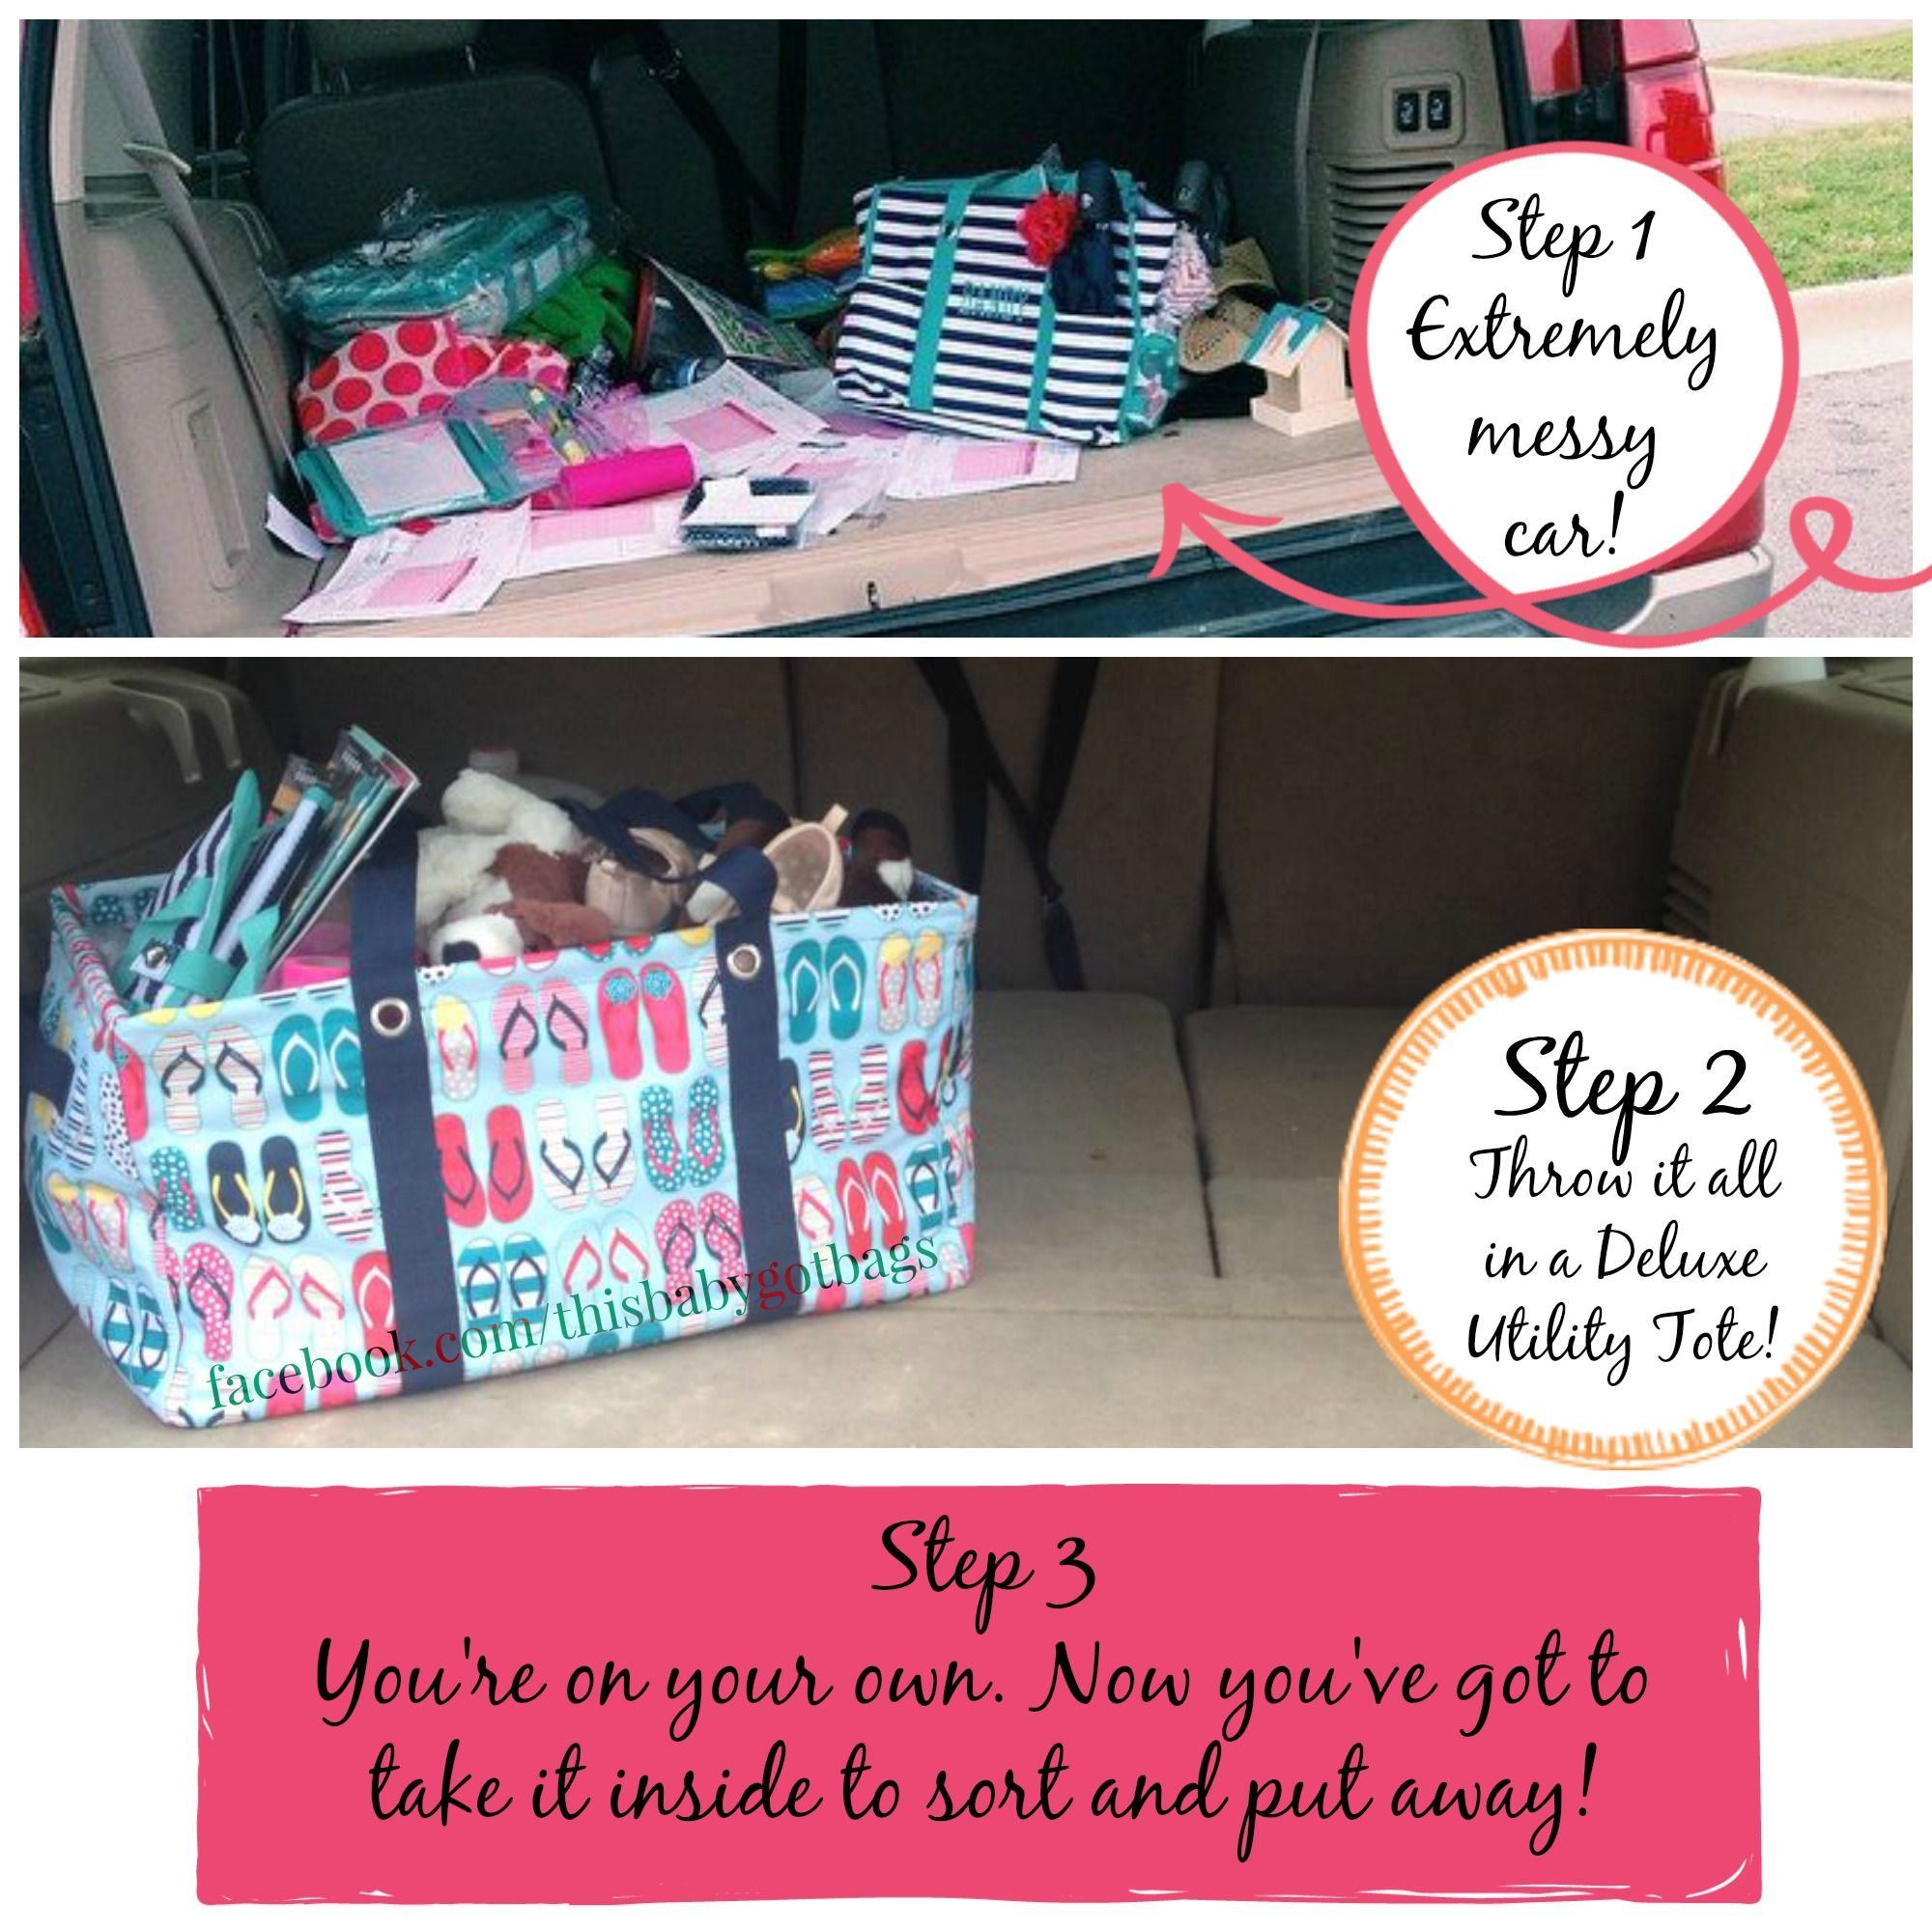 Thirty One, how to clean your car in three steps using the June Thirty One special. I love my deluxe utility tote!